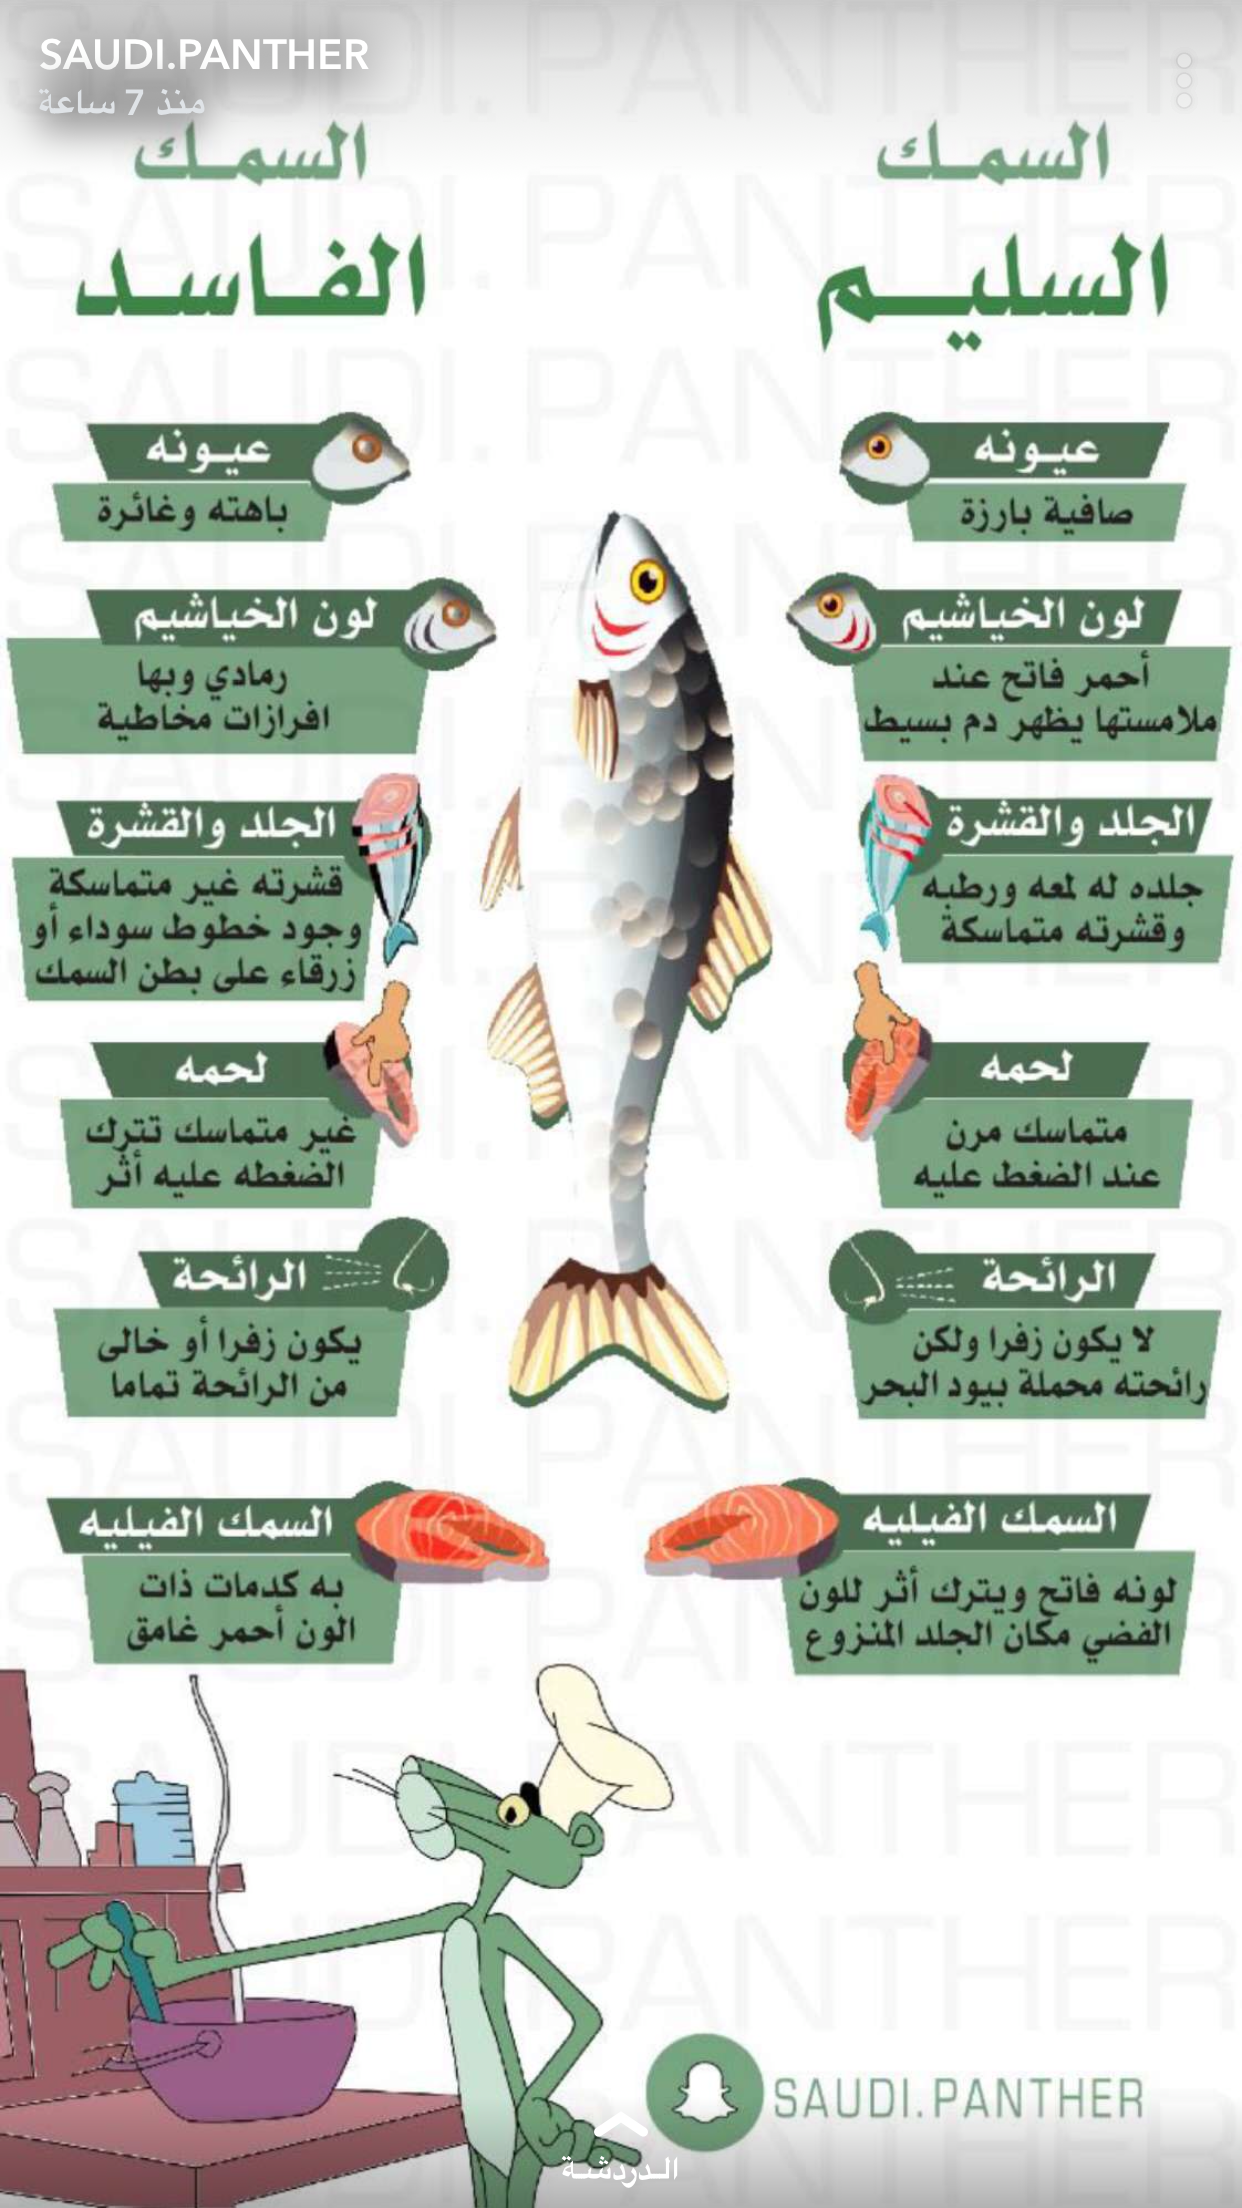 Pin By Aisha M Aseeri On بروتين Health Facts Food Health And Nutrition Baby Food Recipes